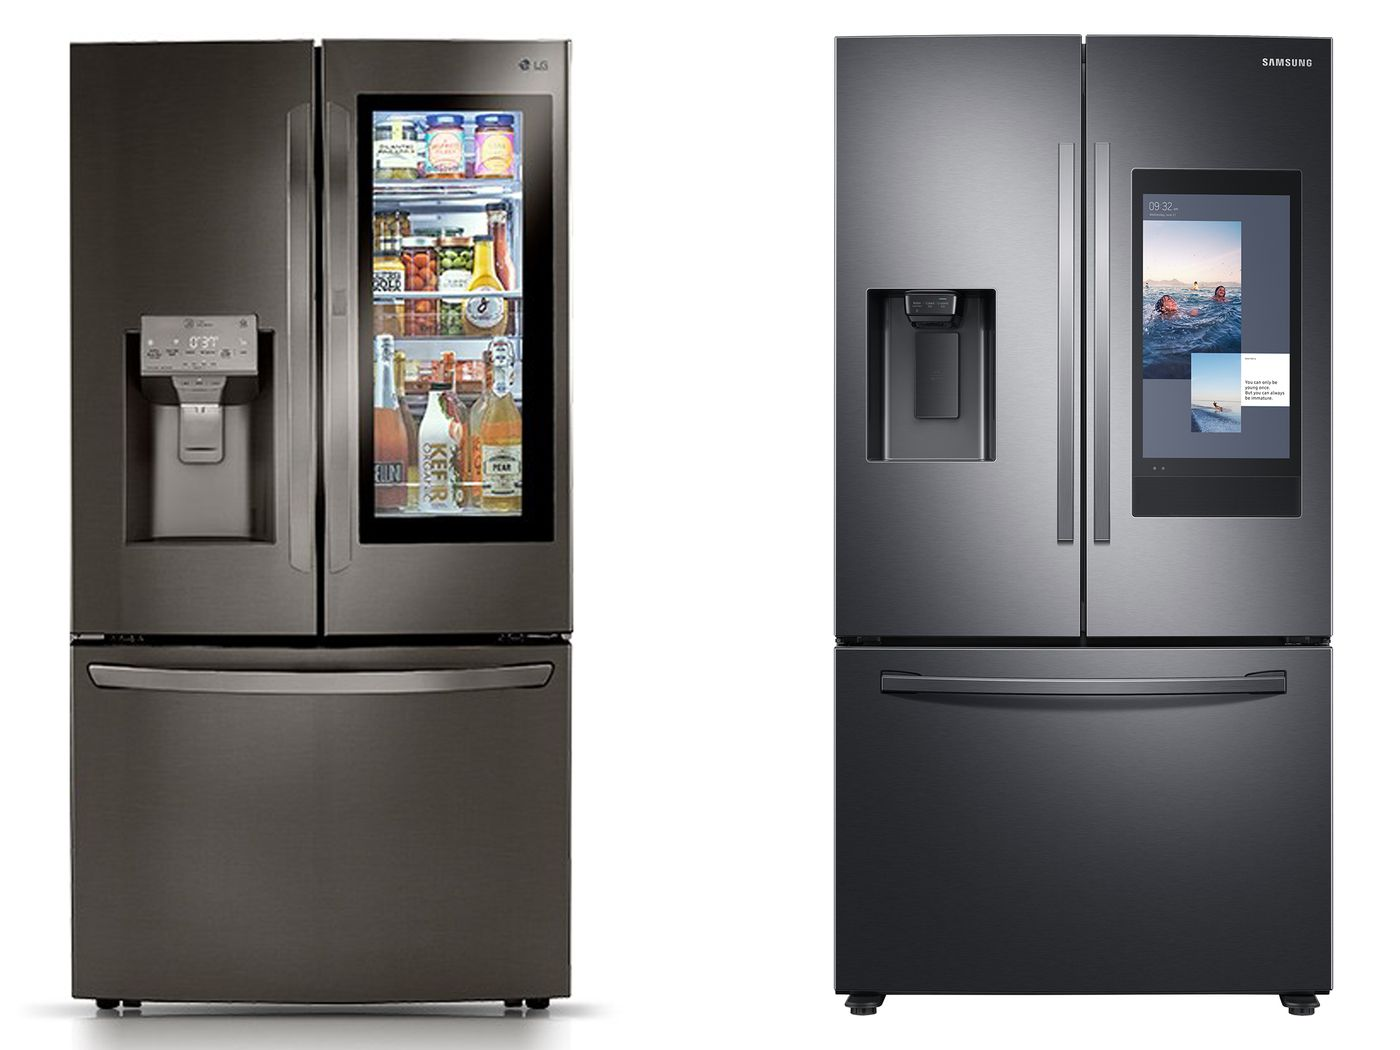 Samsung And Lg Go Head To Head With Ai Powered Fridges That Recognize Food The Verge